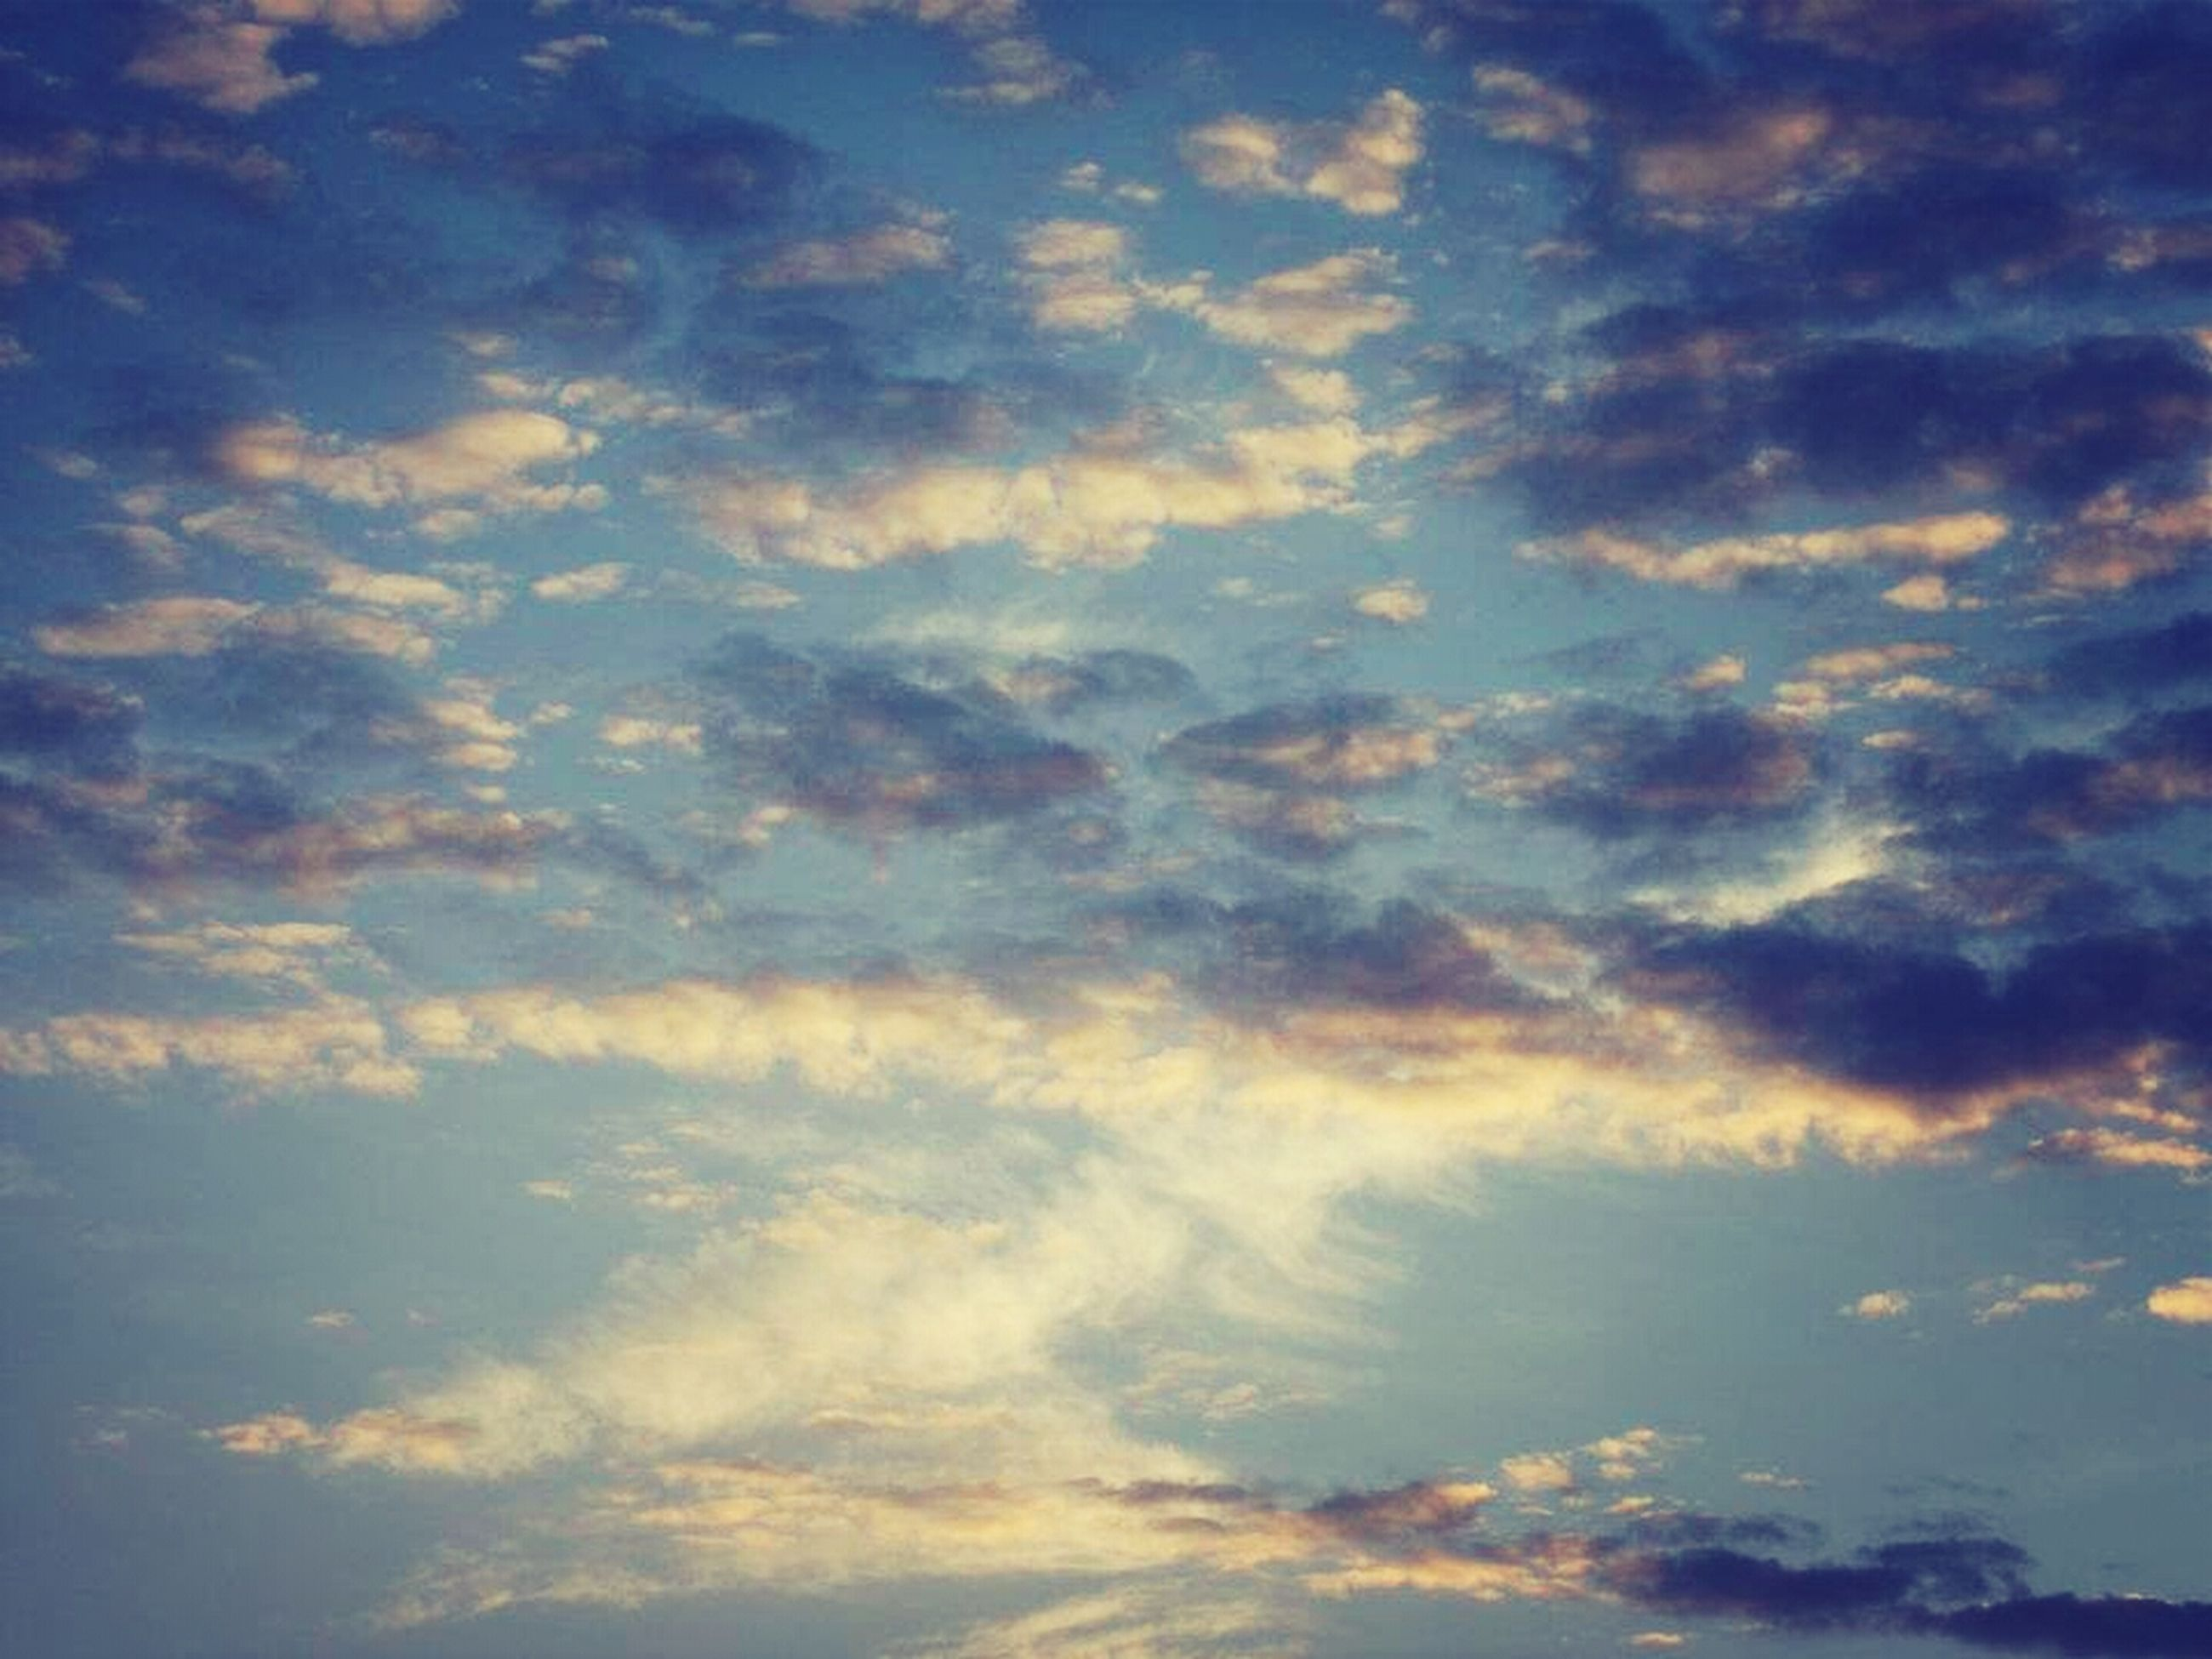 sky, cloud - sky, low angle view, beauty in nature, sky only, scenics, tranquility, cloudy, tranquil scene, cloudscape, nature, cloud, backgrounds, blue, idyllic, sunset, full frame, majestic, outdoors, dramatic sky